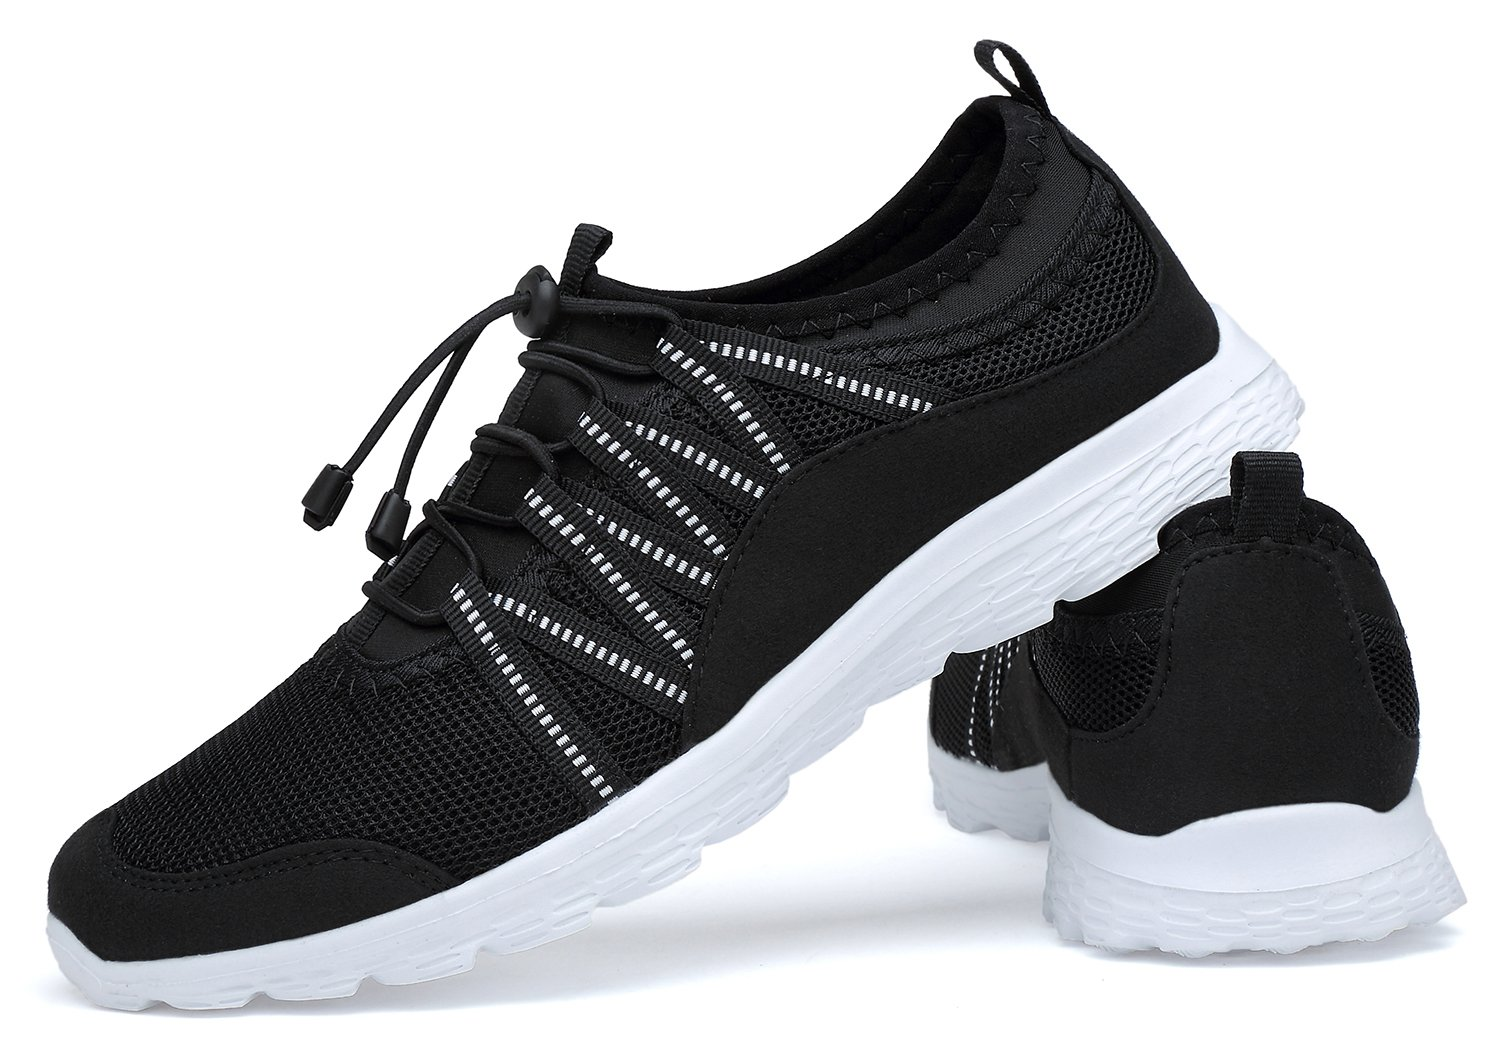 Men's Lightweight Walking Shoes Breathable Mesh Soft Sole for Casual Walk Outdoor Workout Travel Work by Belilent (Image #6)